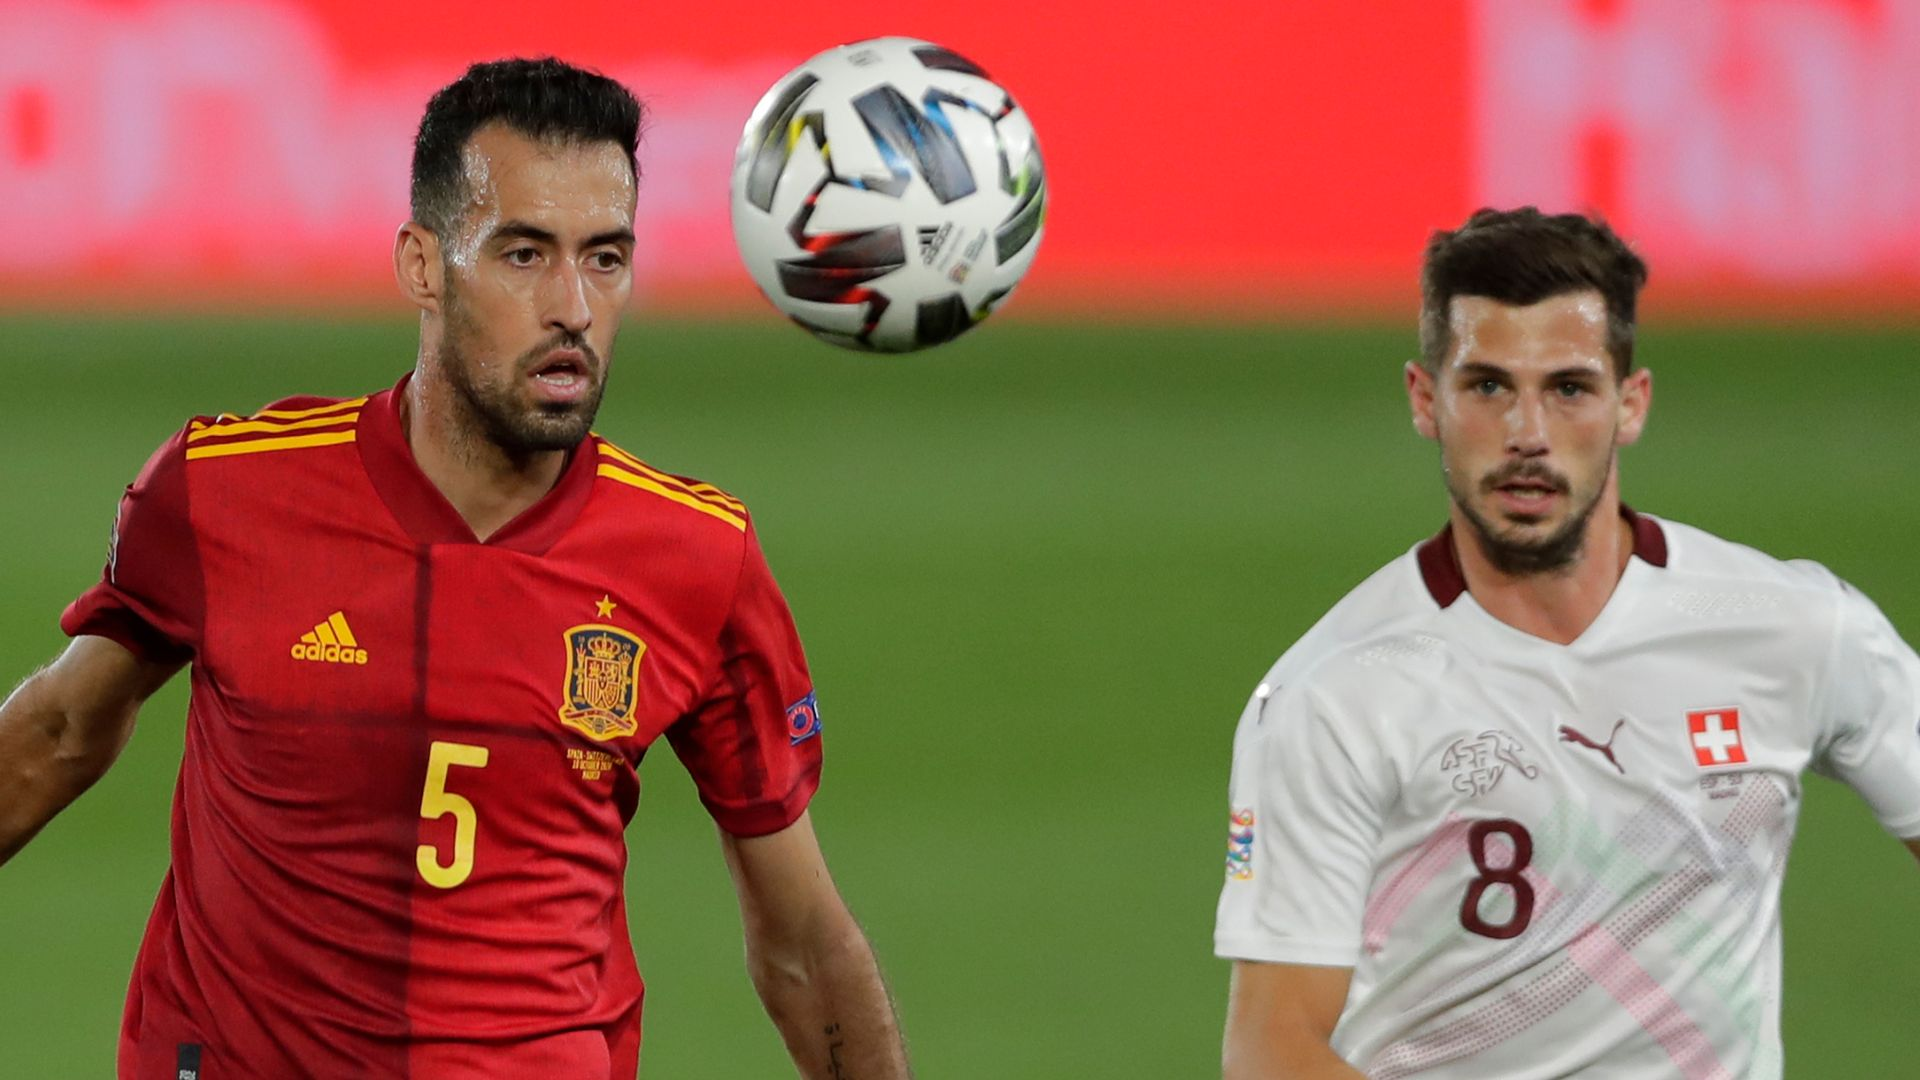 Switzerland vs Spain preview: Can Swiss surprise again?